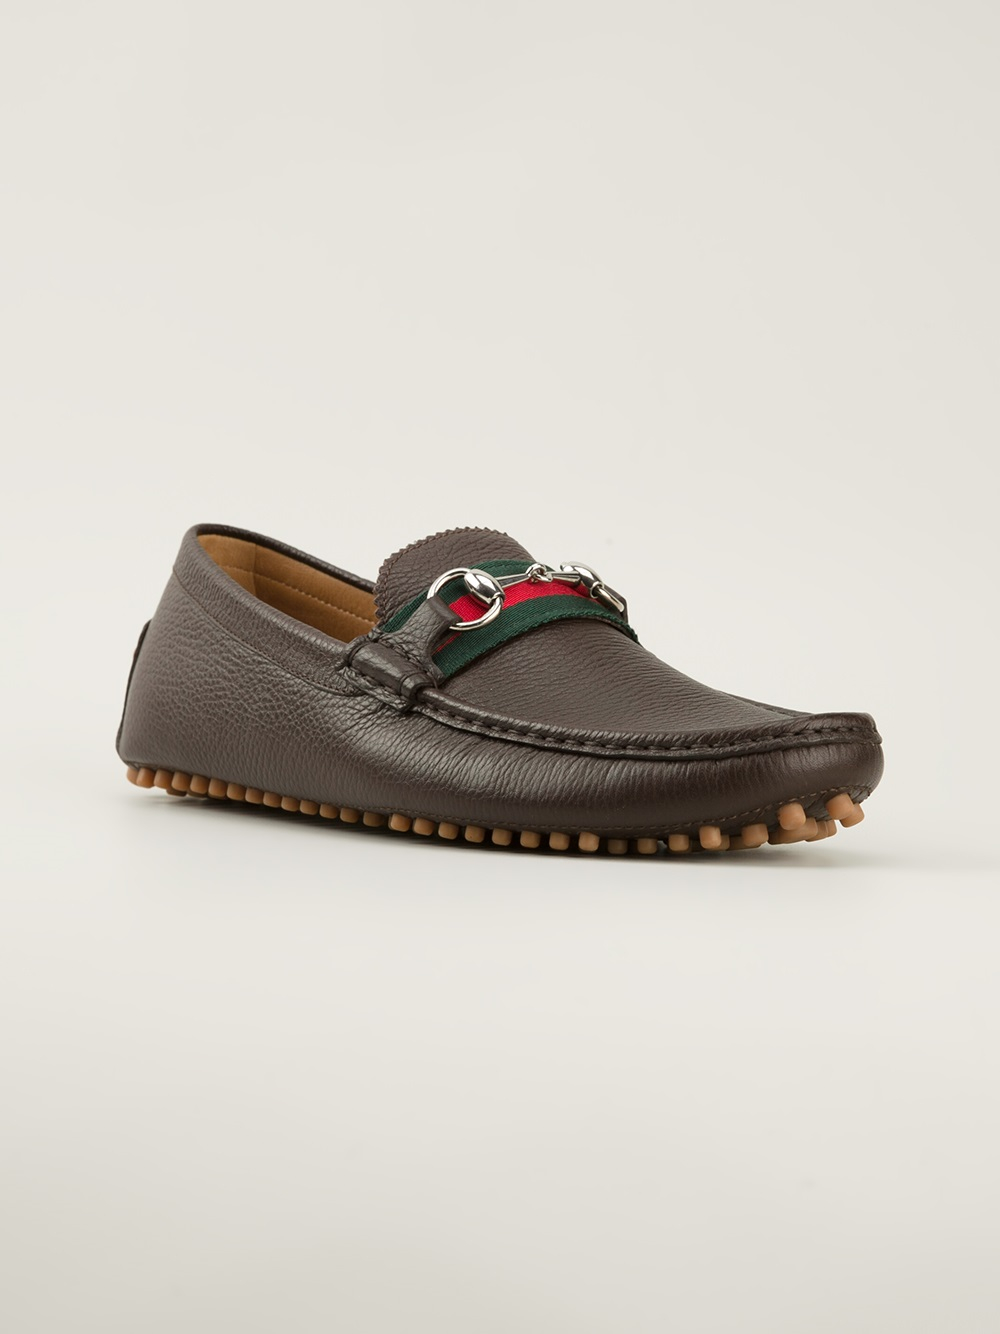 lyst gucci horsebit loafers in brown for men. Black Bedroom Furniture Sets. Home Design Ideas